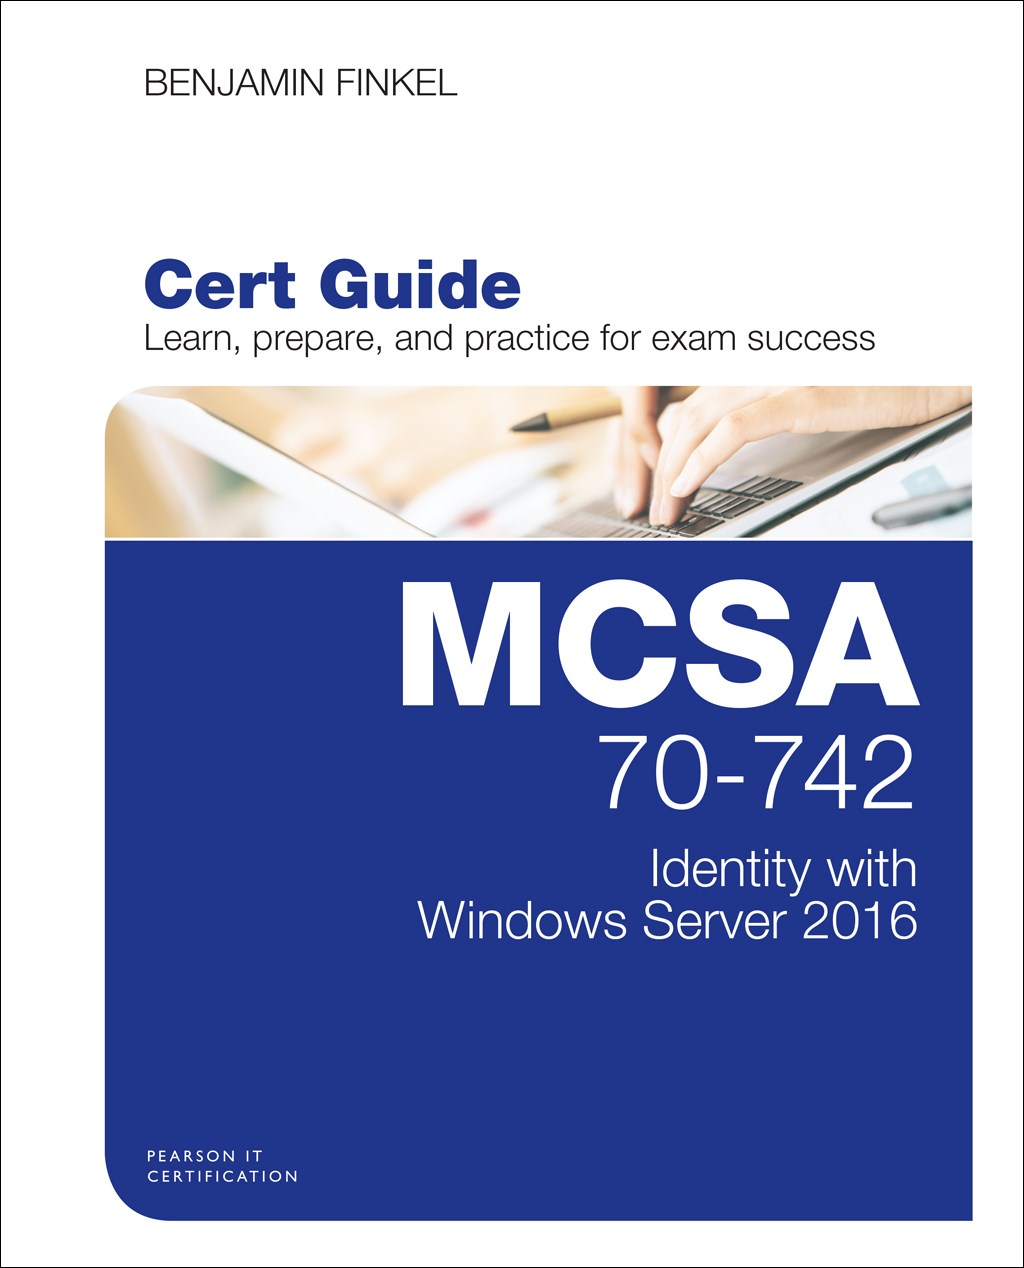 MCSA 70-742 Cert Guide: Identity with Windows Server 2016